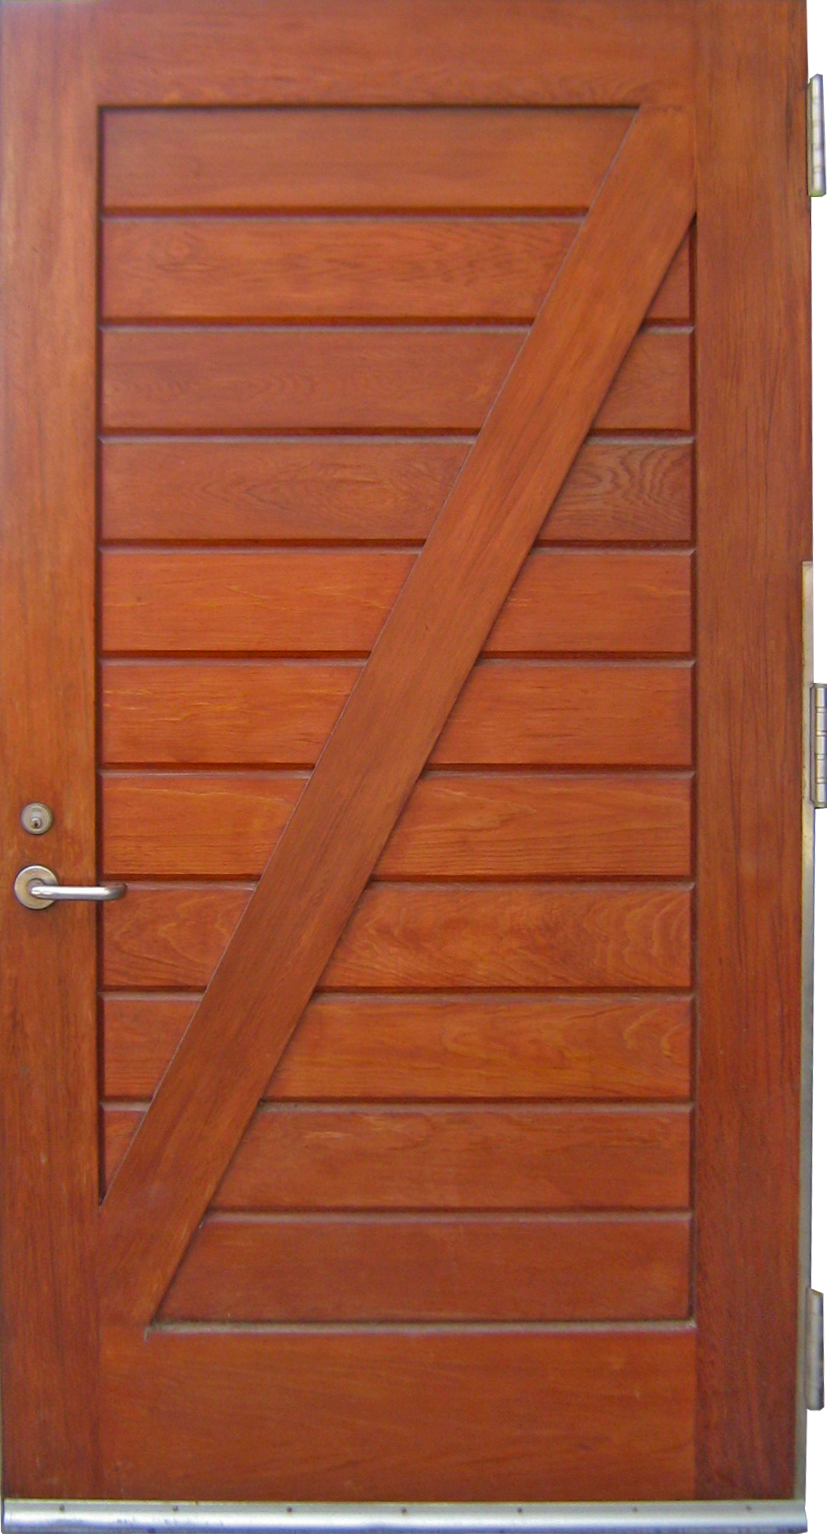 Door Texture Png, png collections at sccpre.cat.